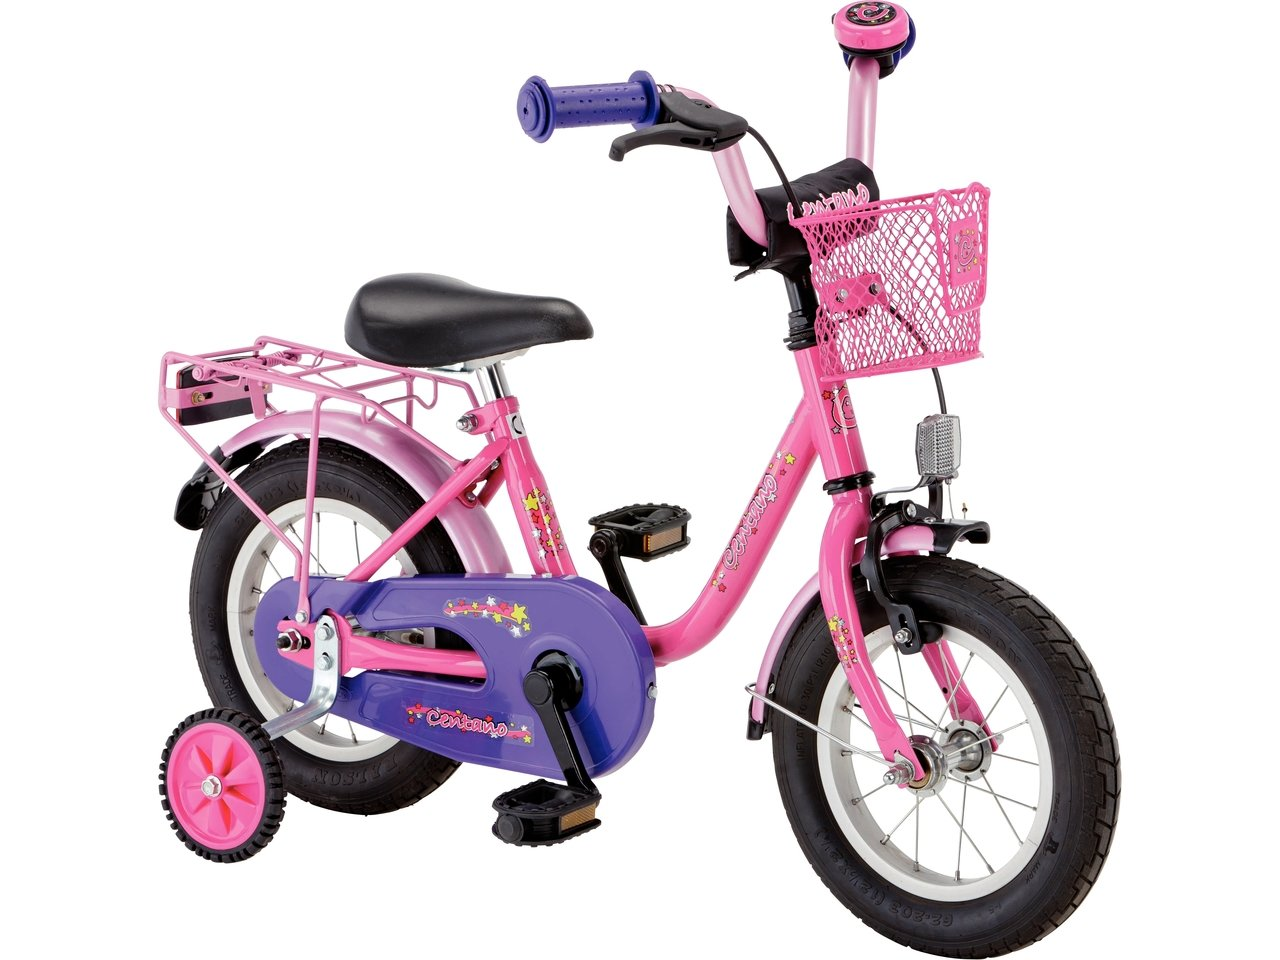 centano bubble kinderfahrrad kinderfahrrad 16 zoll einrohr. Black Bedroom Furniture Sets. Home Design Ideas